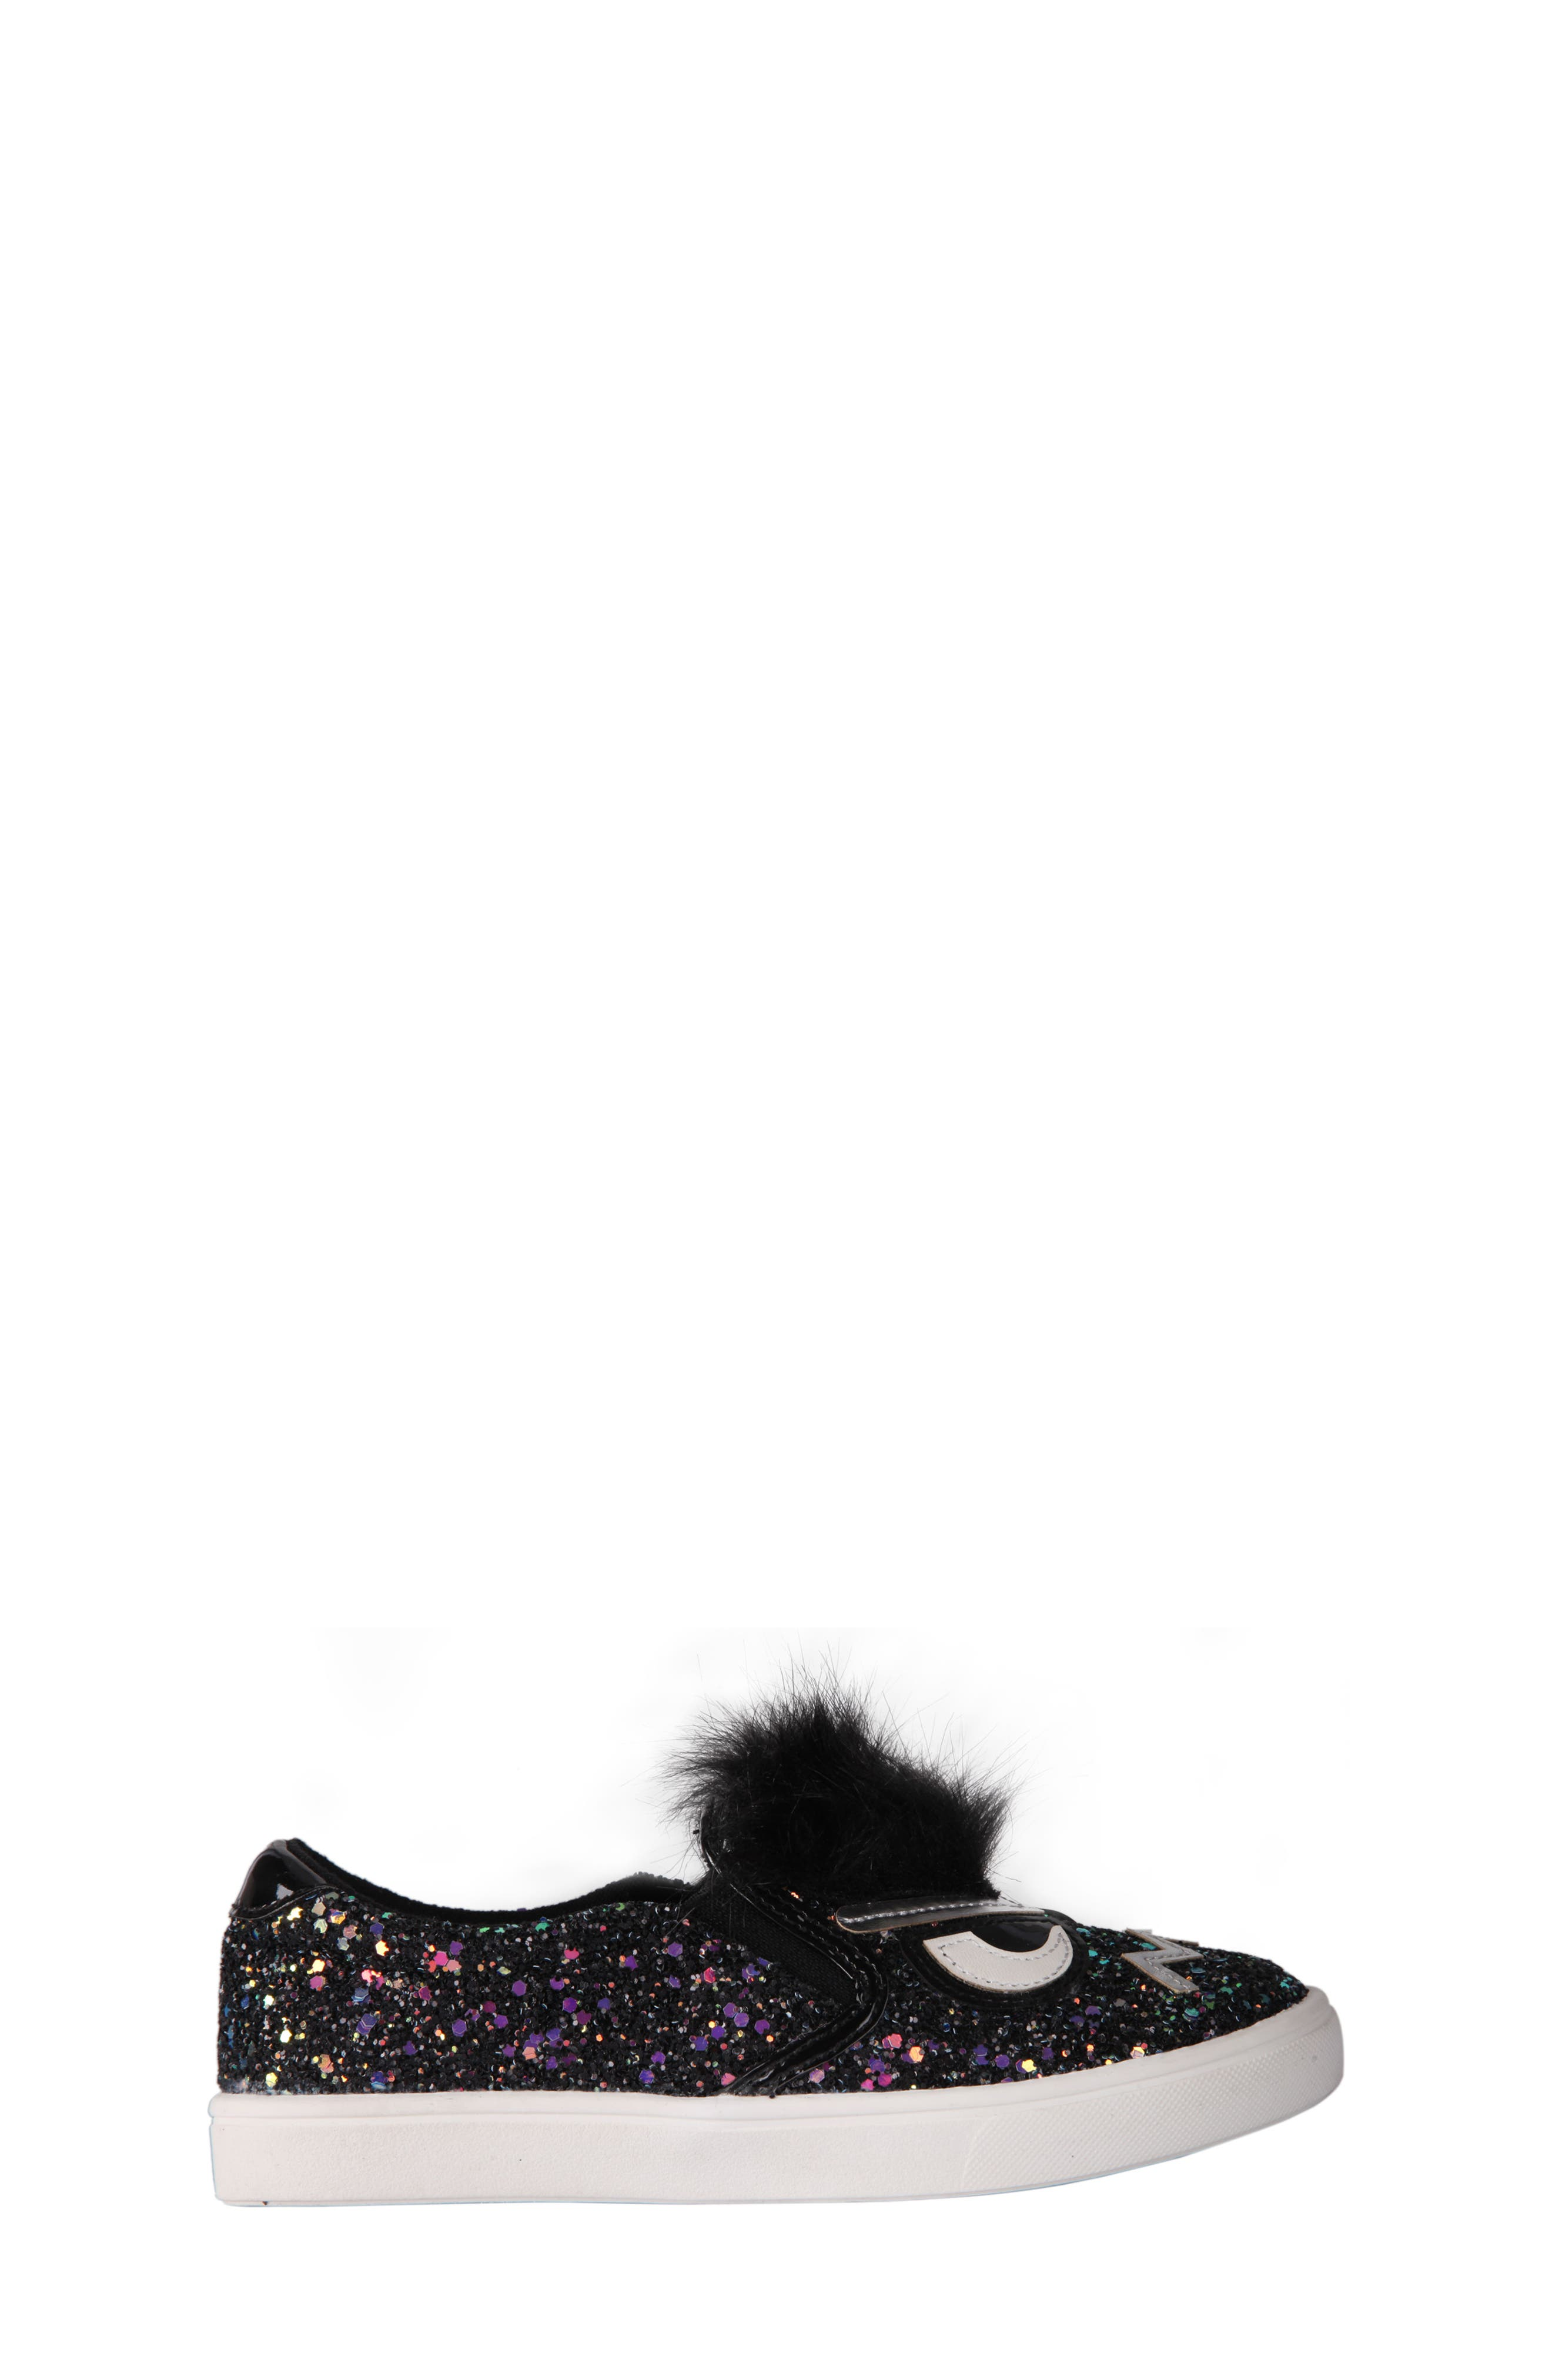 Alyx Faux Fur Glittery Slip-On Sneaker,                             Alternate thumbnail 3, color,                             Black Chunky Glitter